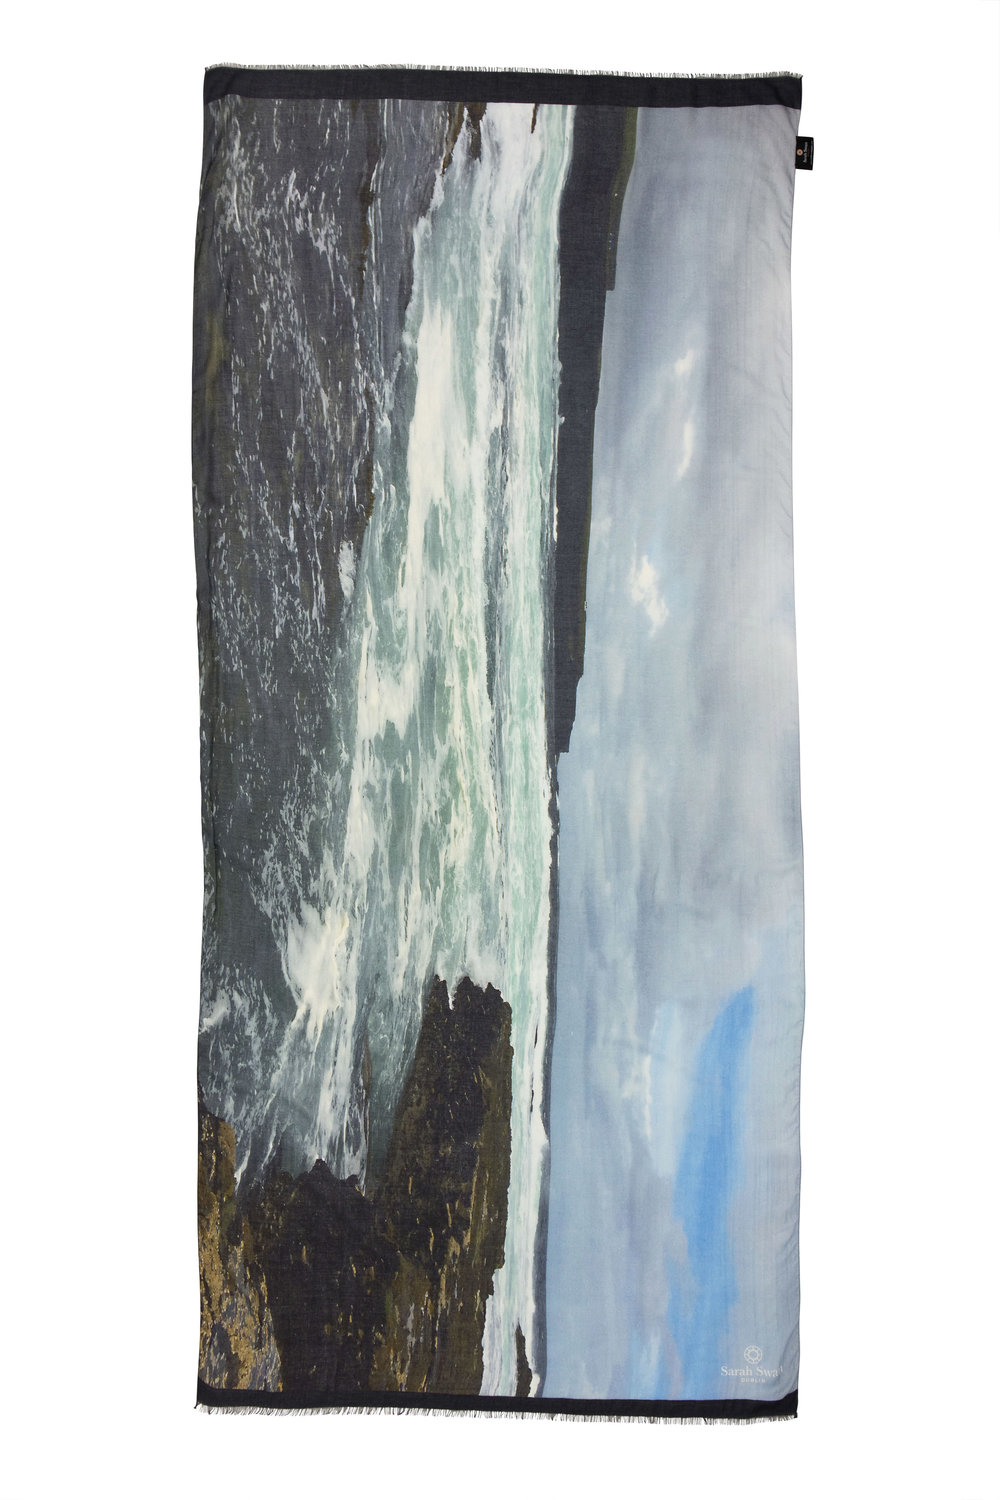 Kilkee - Kilkee Collcetion is inspired by the West Coast of Clare, Ireland. The hidden gem of rock pools of water known as the pollock holes, Kilkee. Also the beautiful Atlantic Ocean and rugged Doonbeg Doughmore beach.